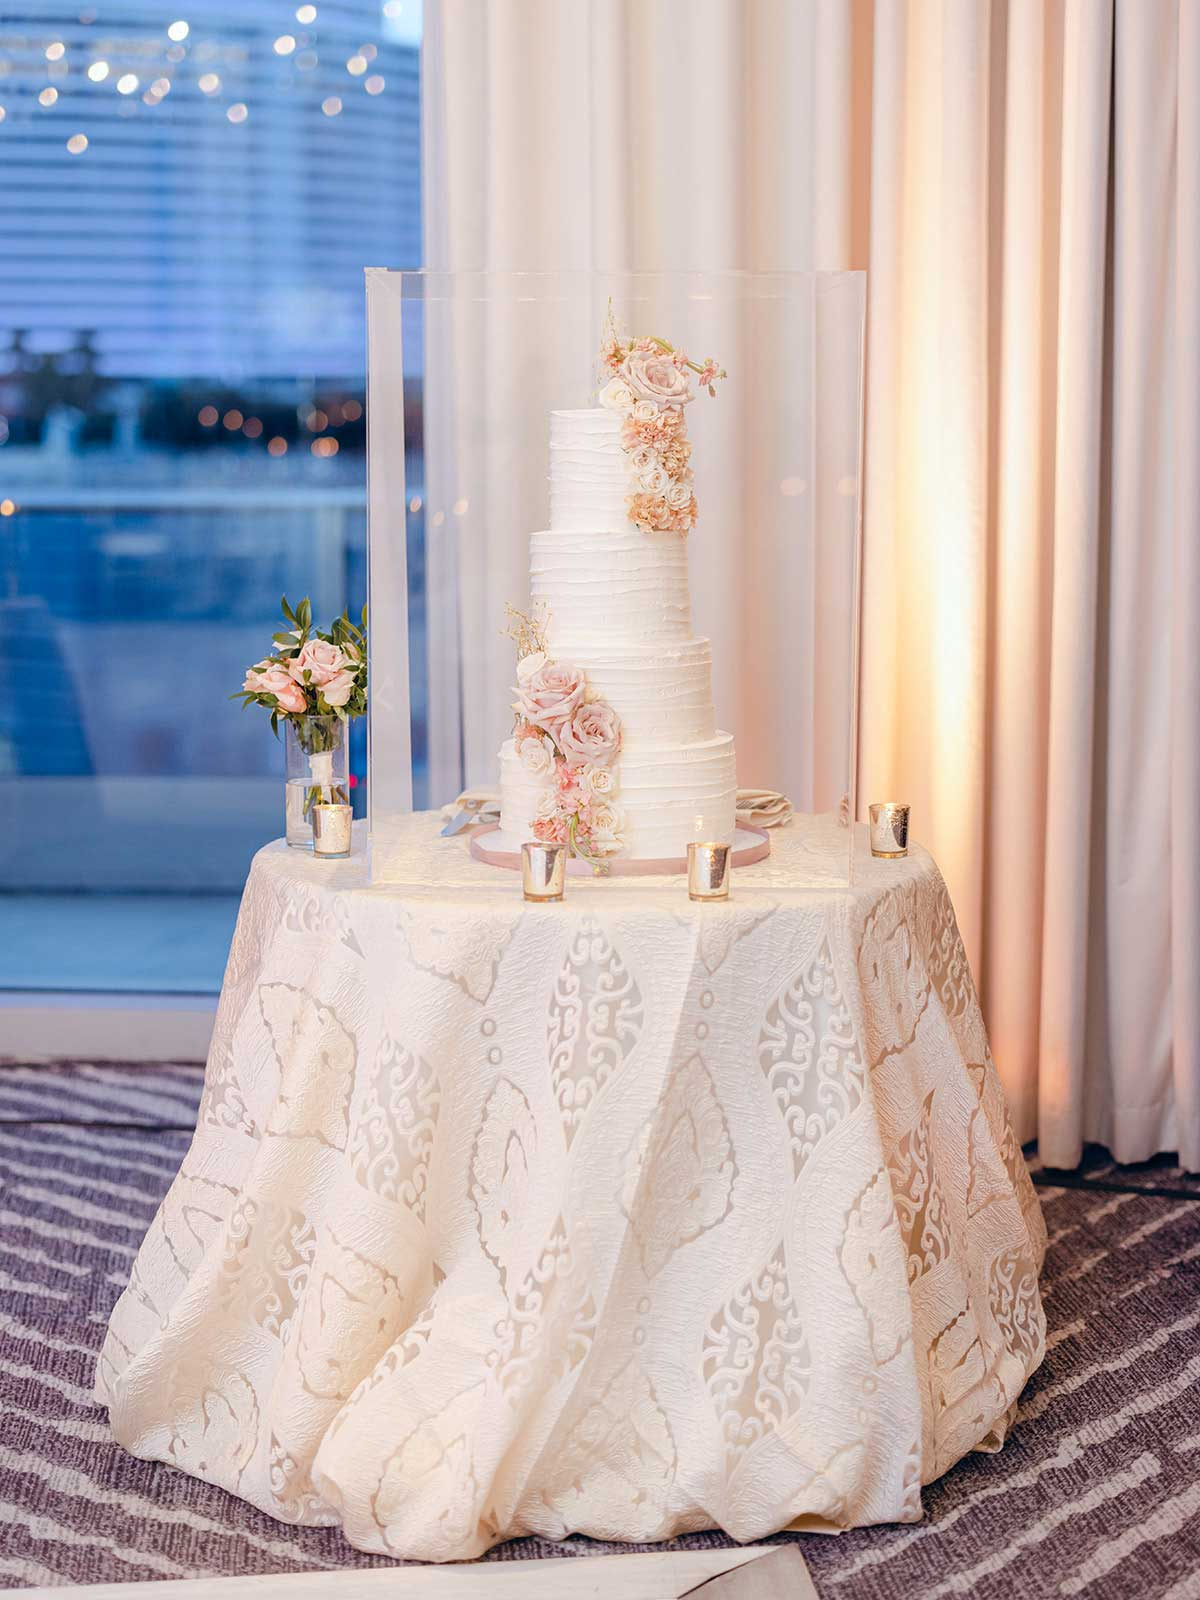 4 tiered white wedding cake with pink flowers draping on the side.